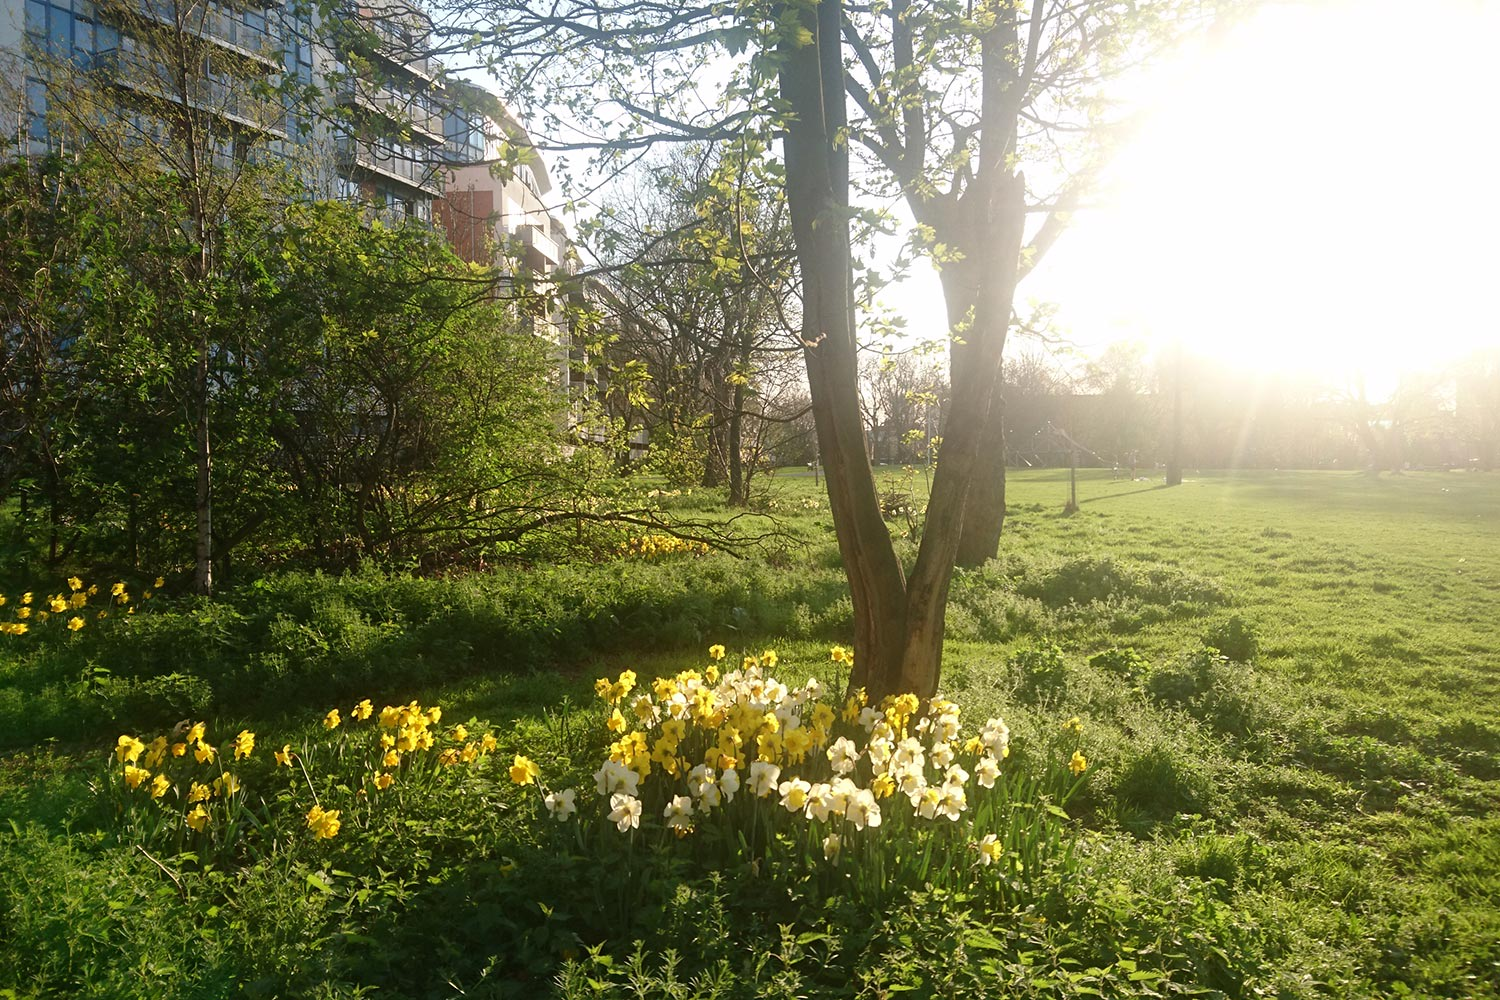 Daffodils in bloom in Meath Gardens, in East London